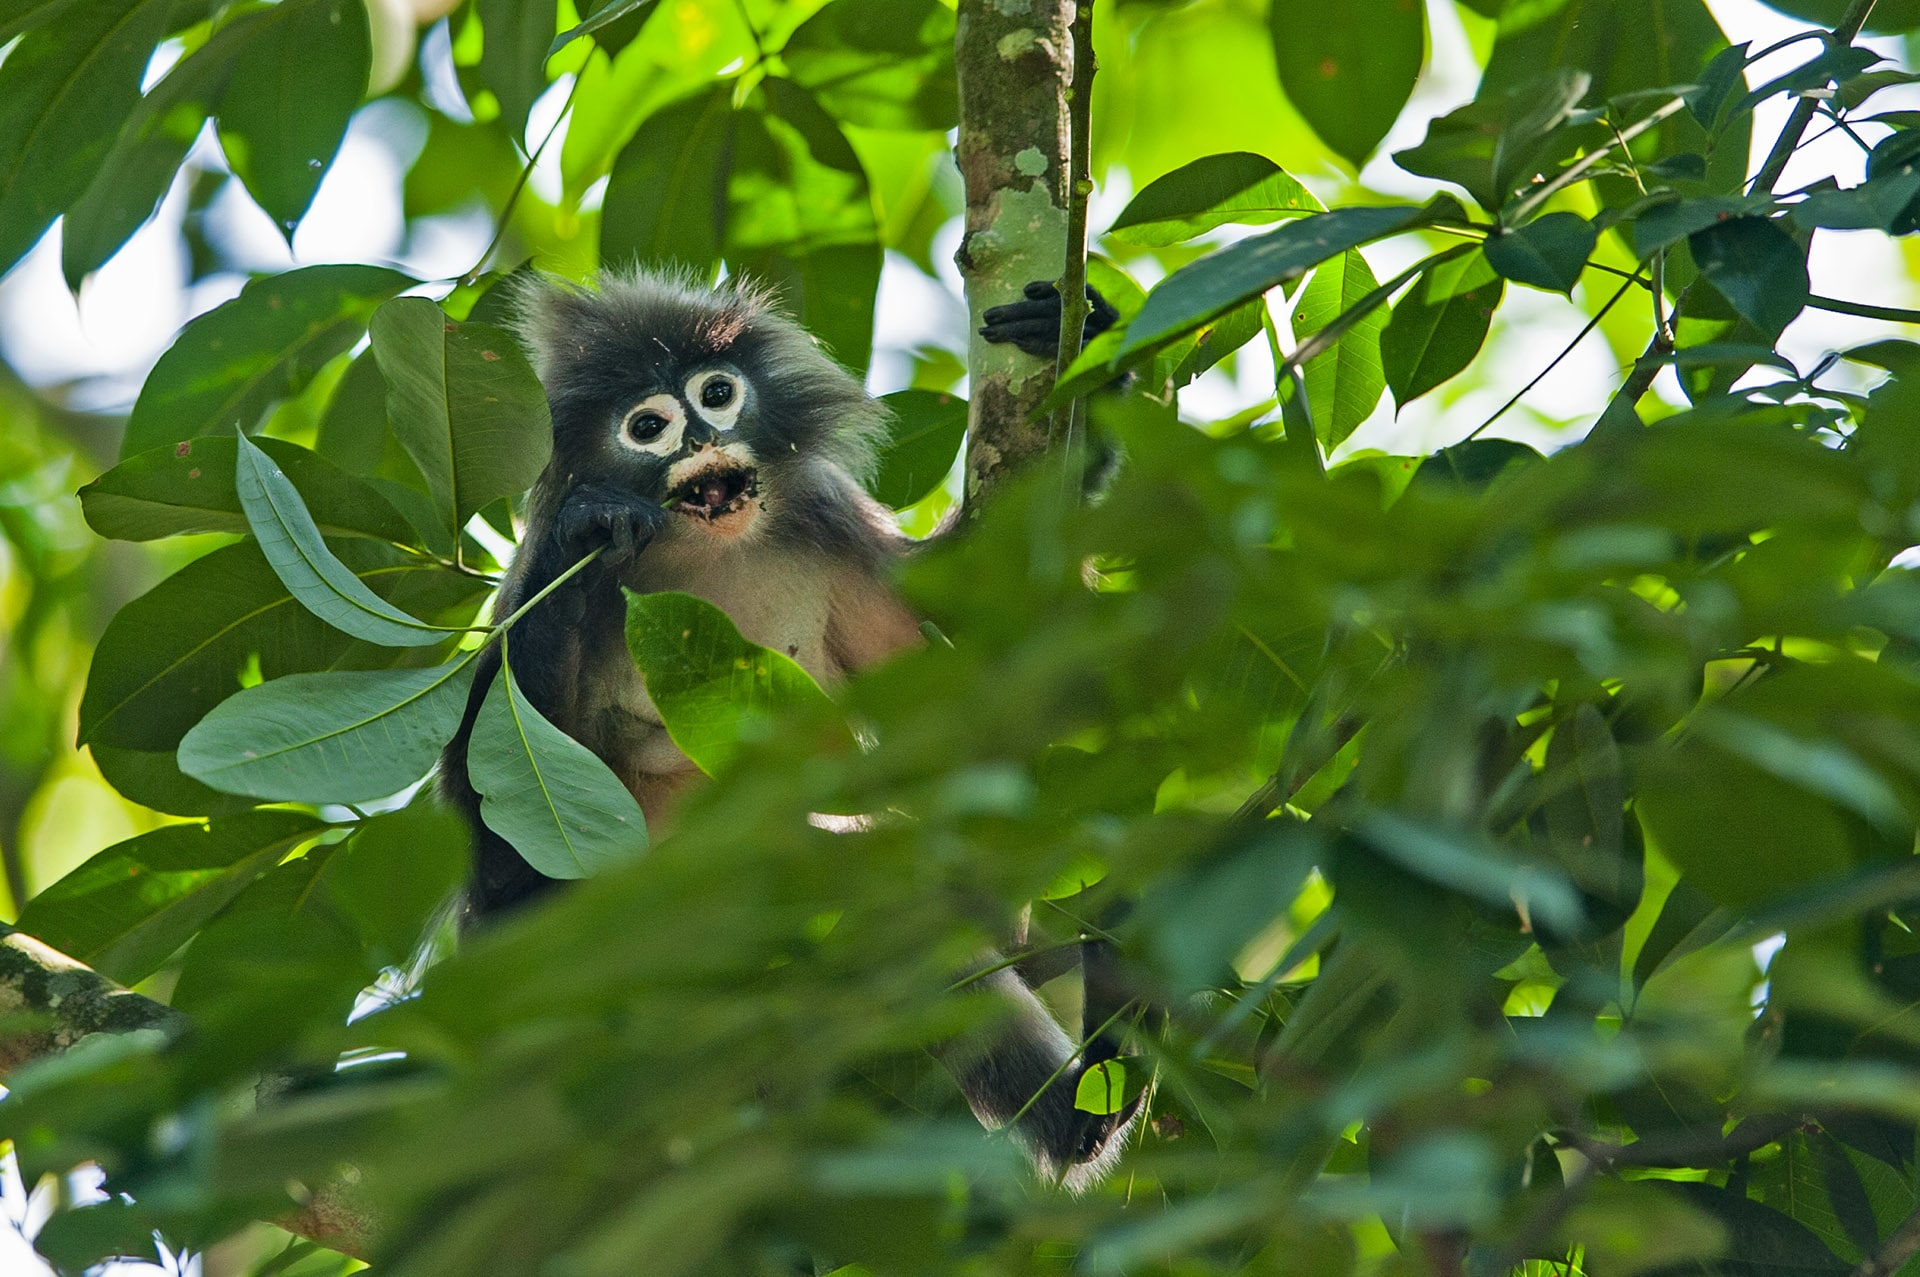 Phayre's leaf monkeys have a unique digestive system that allows them to primarily consume challenging food like leaves.